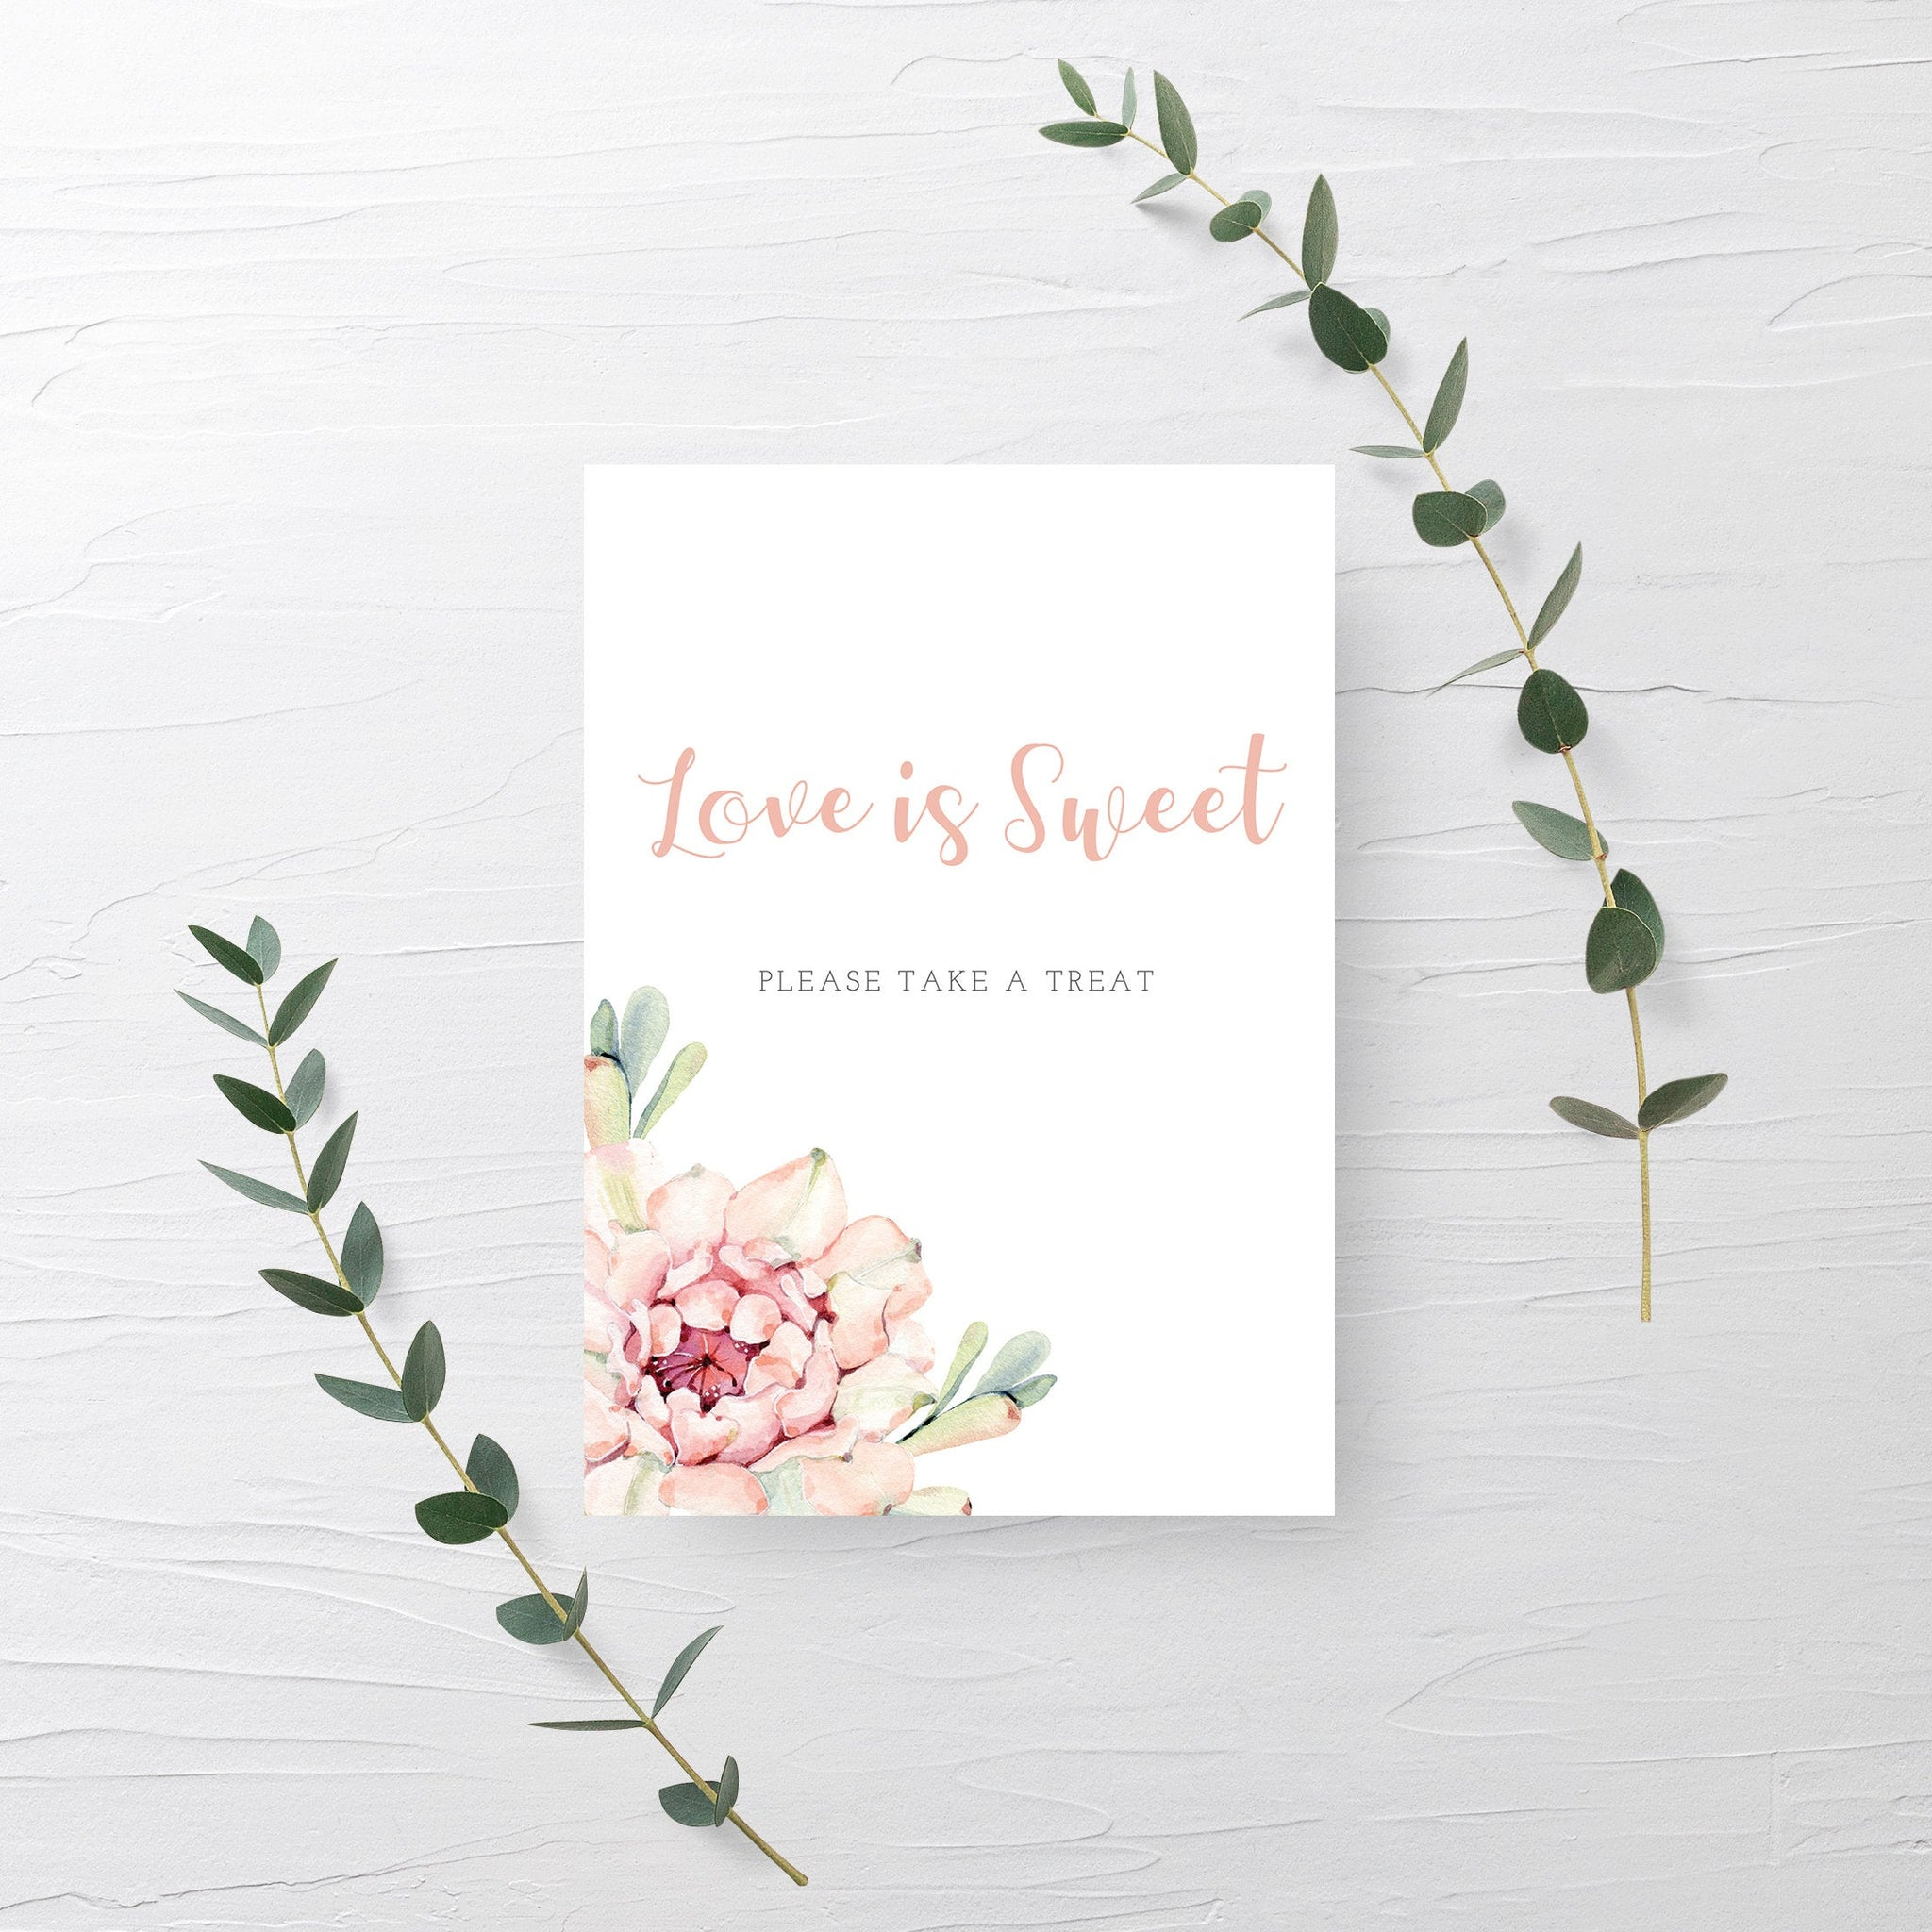 Succulent Bridal Shower Dessert Table Sign Printable, Love Is Sweet Treat Sign Printable, Cactus Bridal Shower, DIGITAL DOWNLOAD - CS100 - @PlumPolkaDot